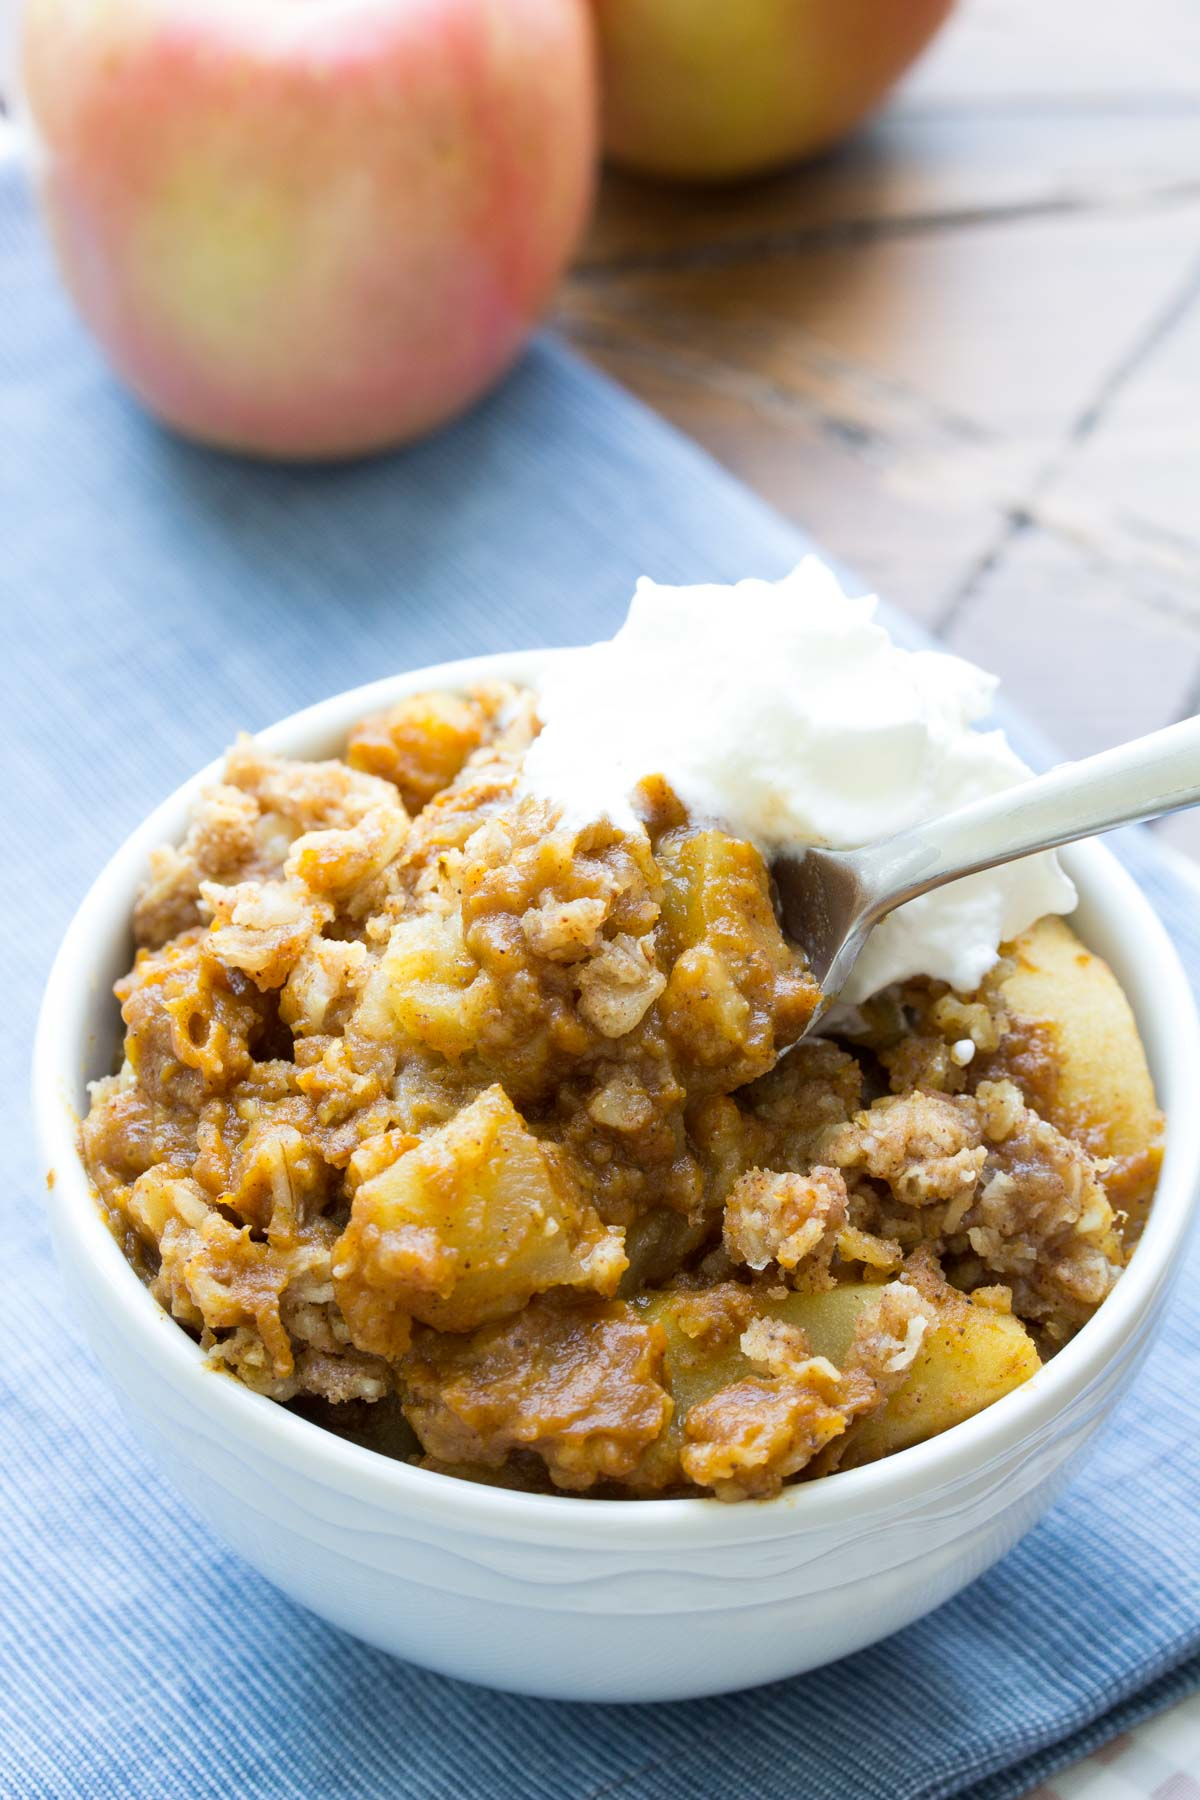 Slow Cooker Pumpkin Apple Crisp! An irresistible combination of pumpkin pie and apple crisp, made completely in your crock pot! | www.kristineskitchenblog.com